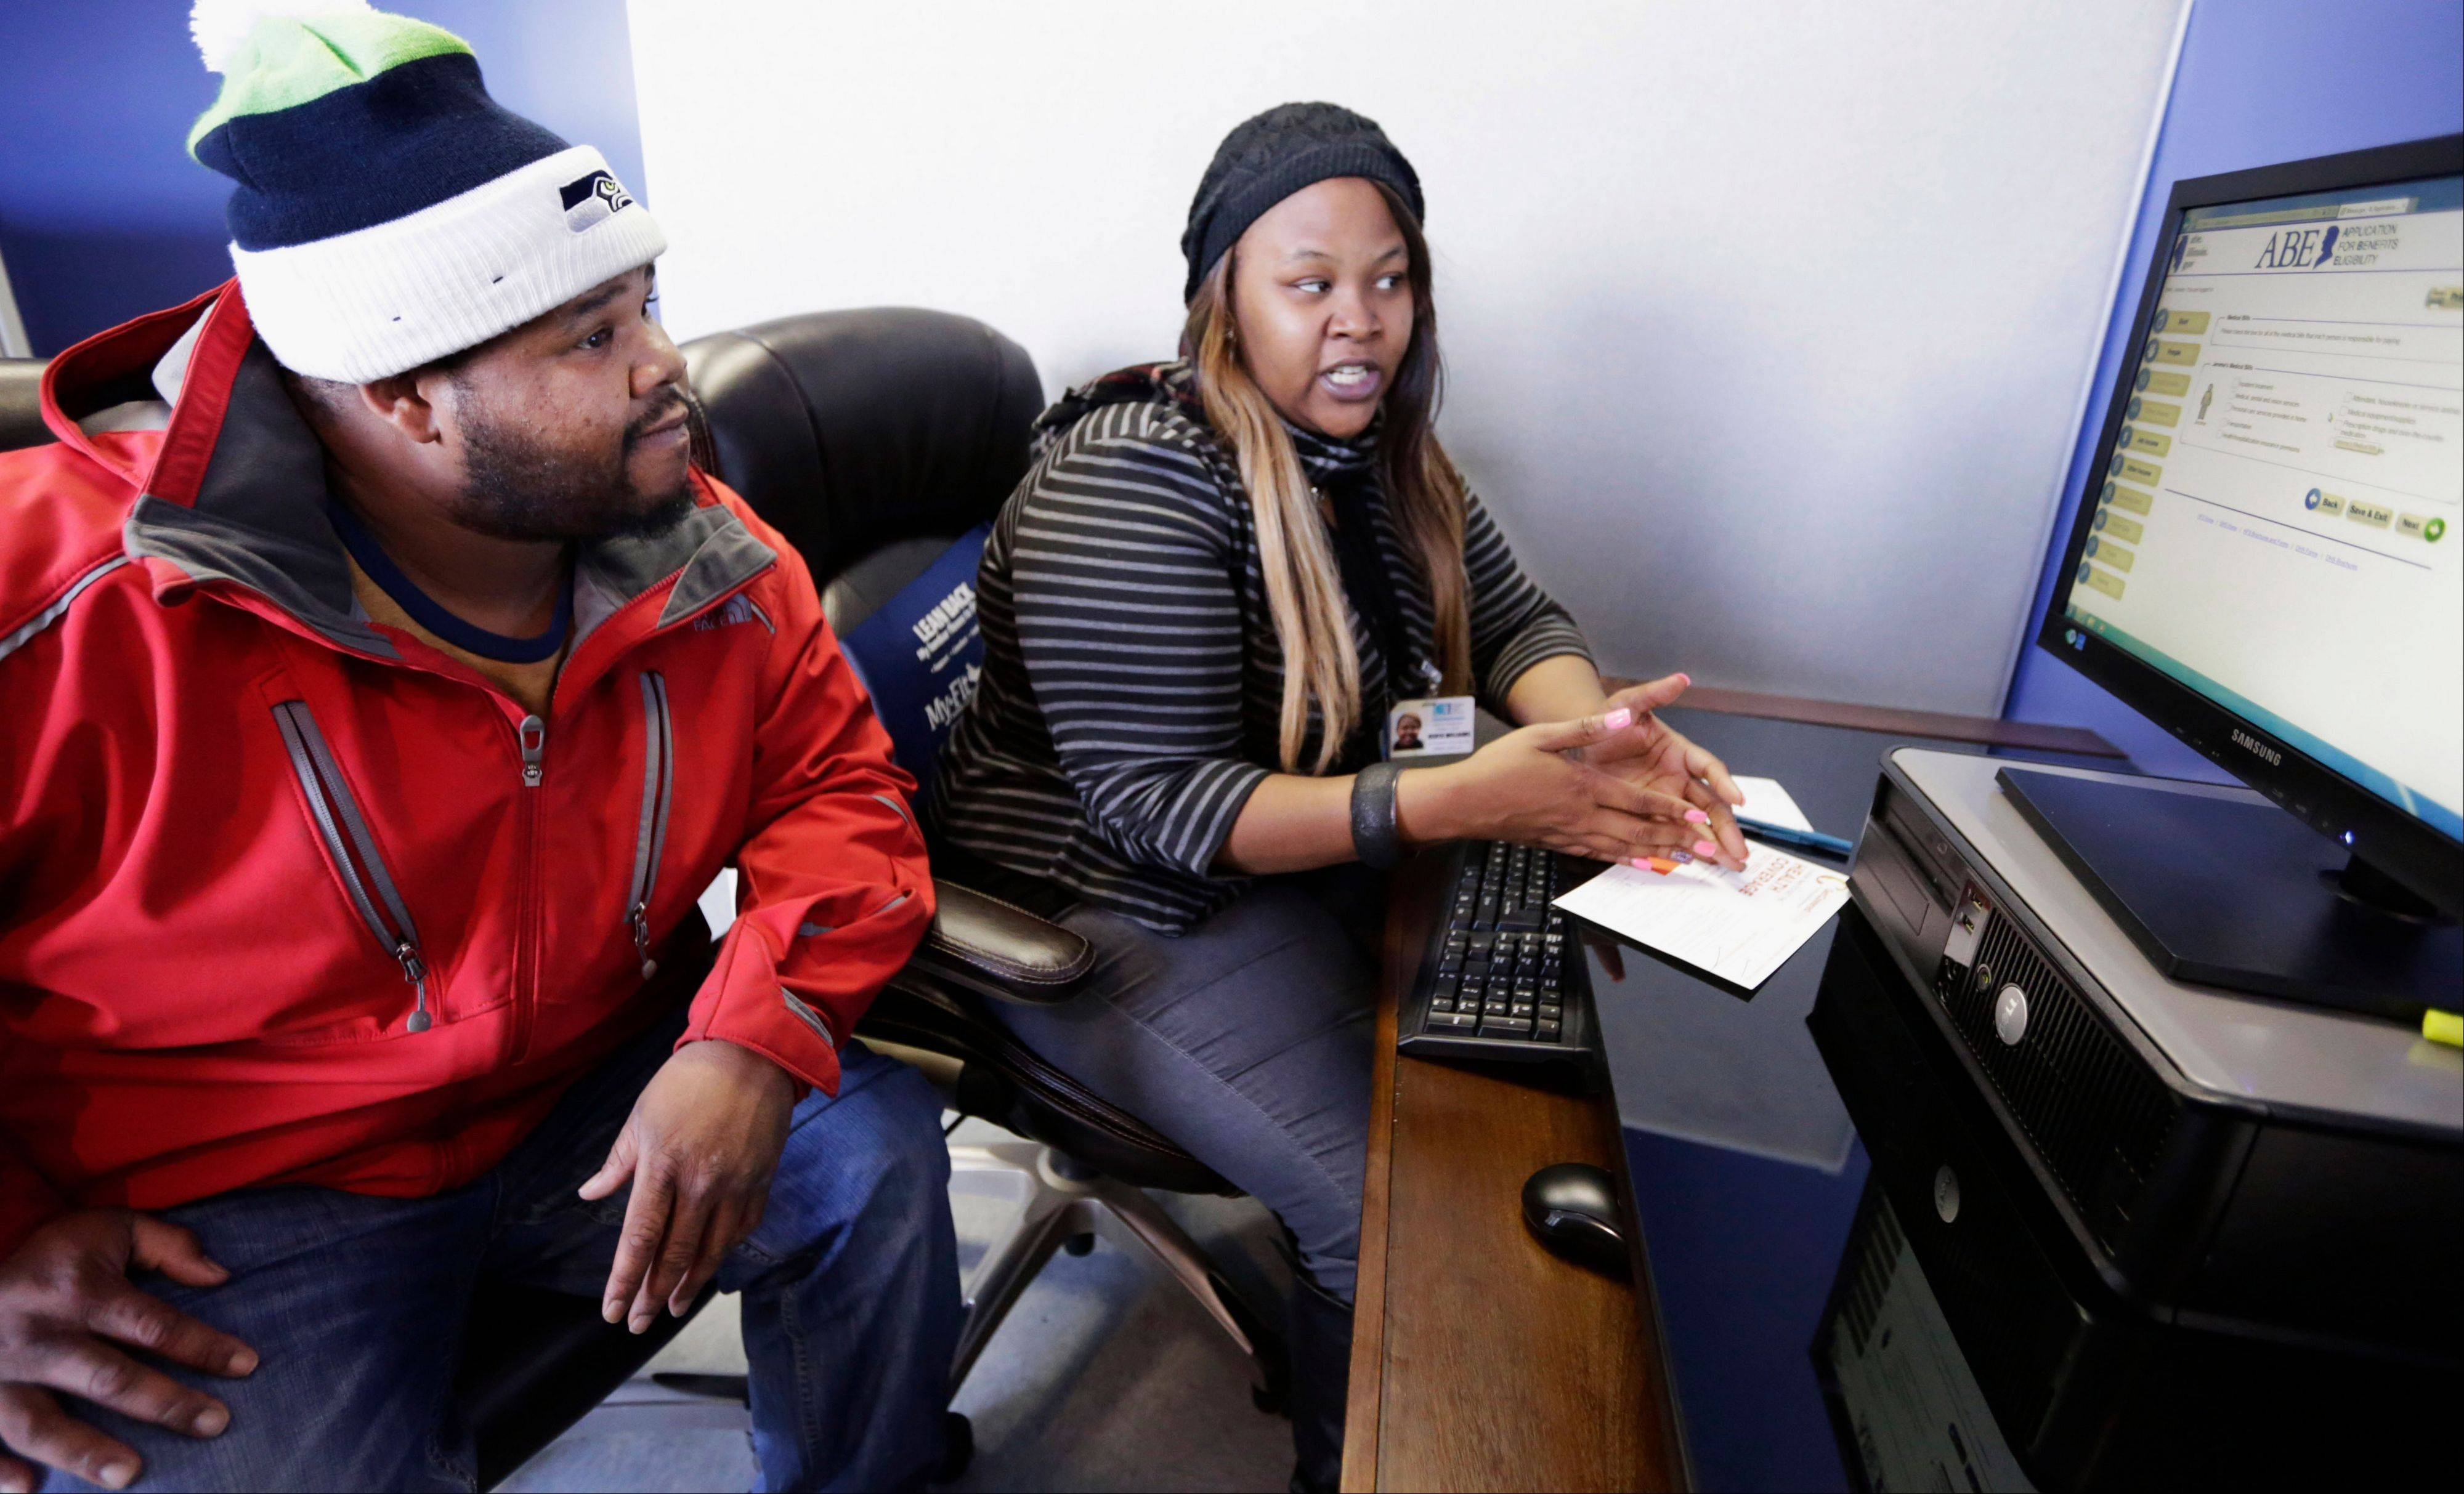 Enrollment counselor Kenya Williams helps Jerome Davis Jr. 36, sign up for Medicaid last week at the Westside Health Authority in Chicago. For Davis, an unemployed construction worker, expansion of Medicaid means he'll be able to see a doctor without fear of medical bills he can't pay.